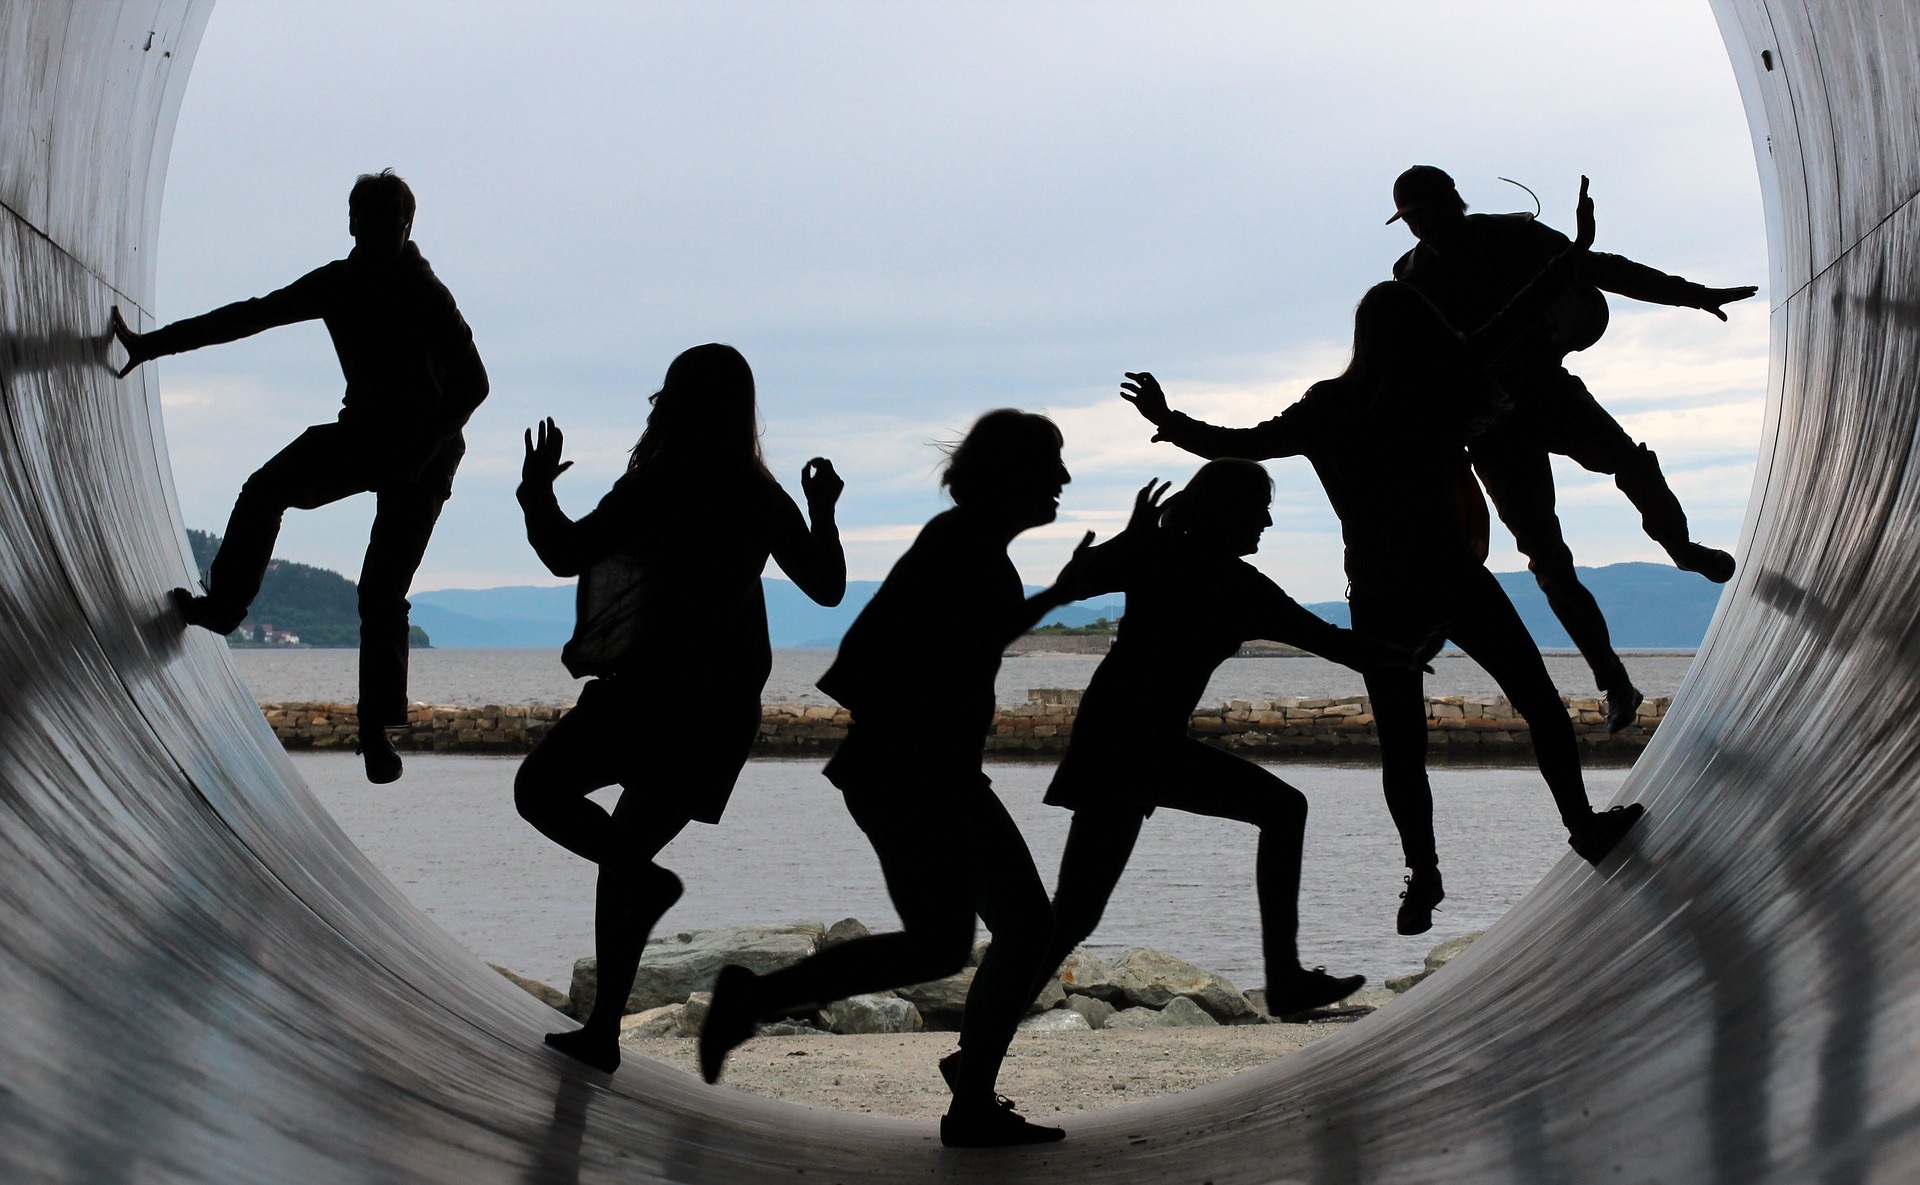 A shadowy group of individuals jump and play in a very large circular tube.